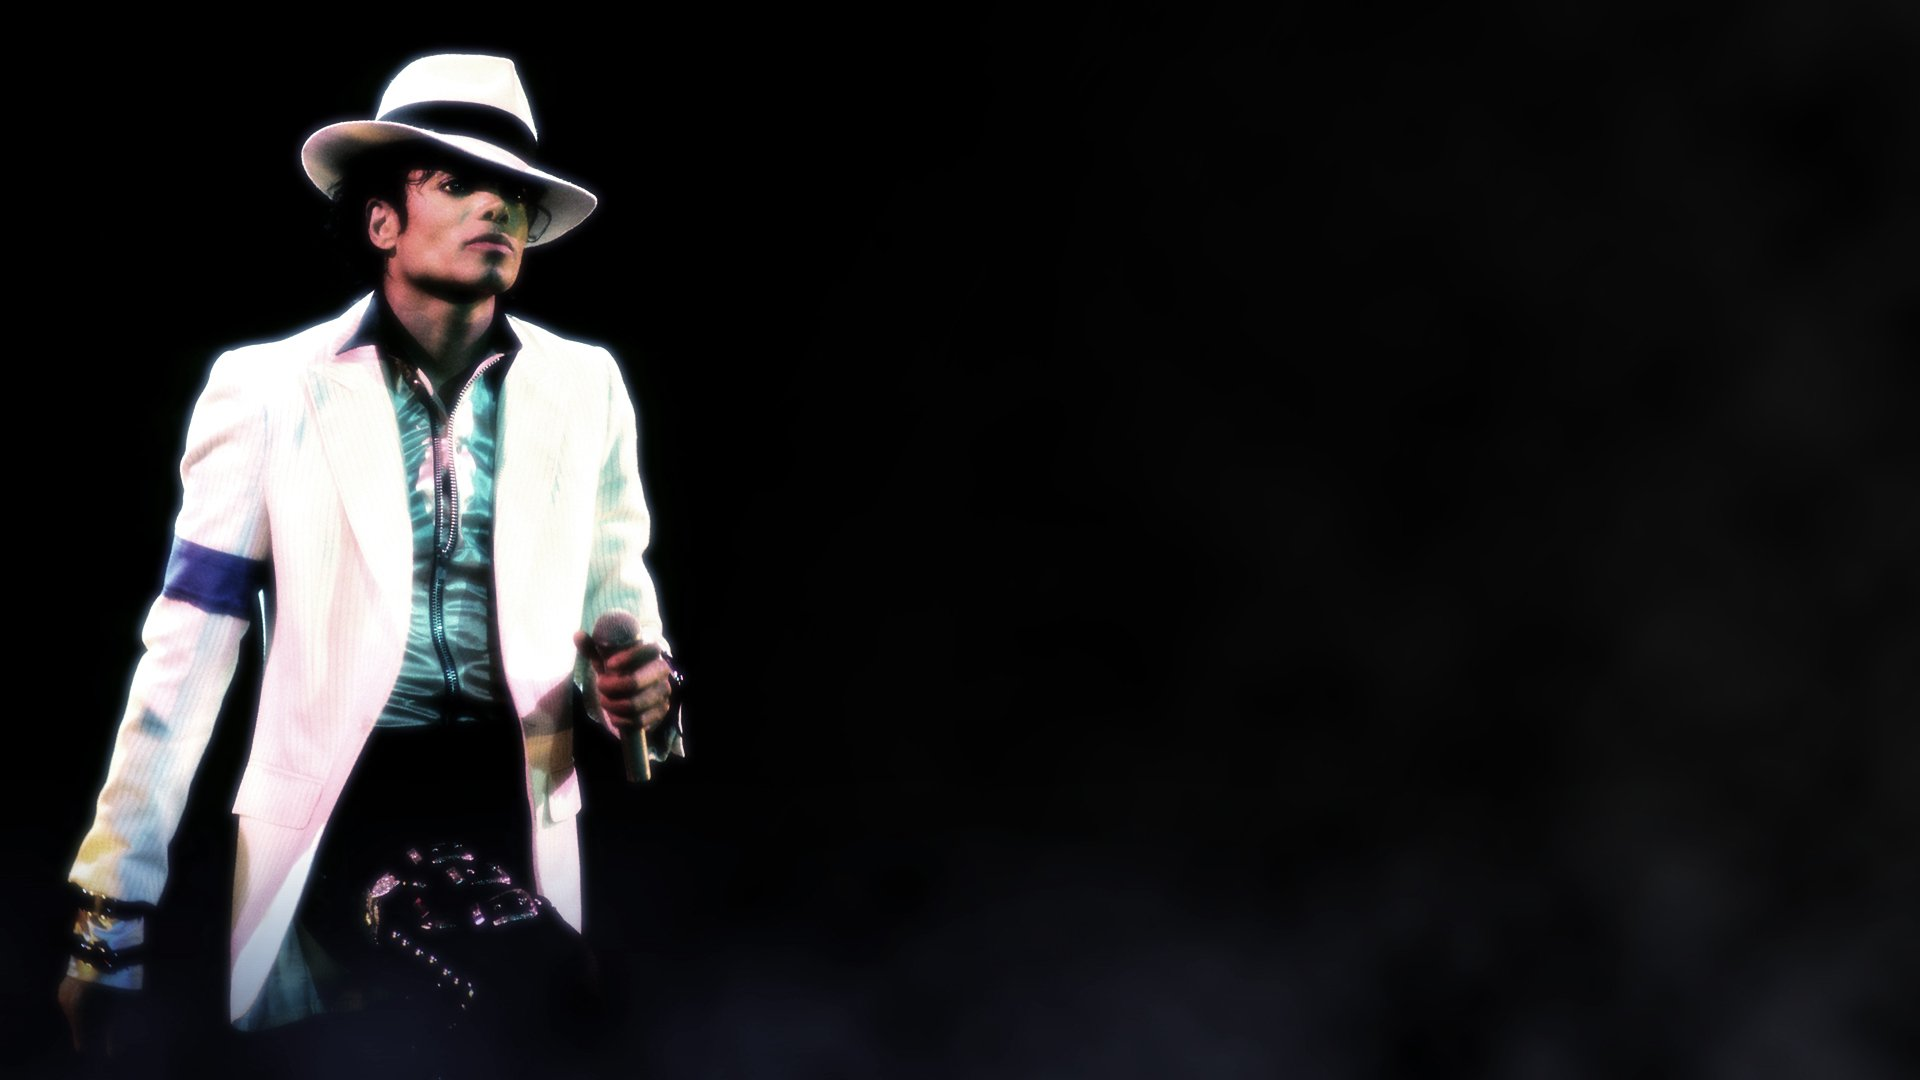 Smooth Criminal Hd Wallpaper Background Image 1920x1080 Id